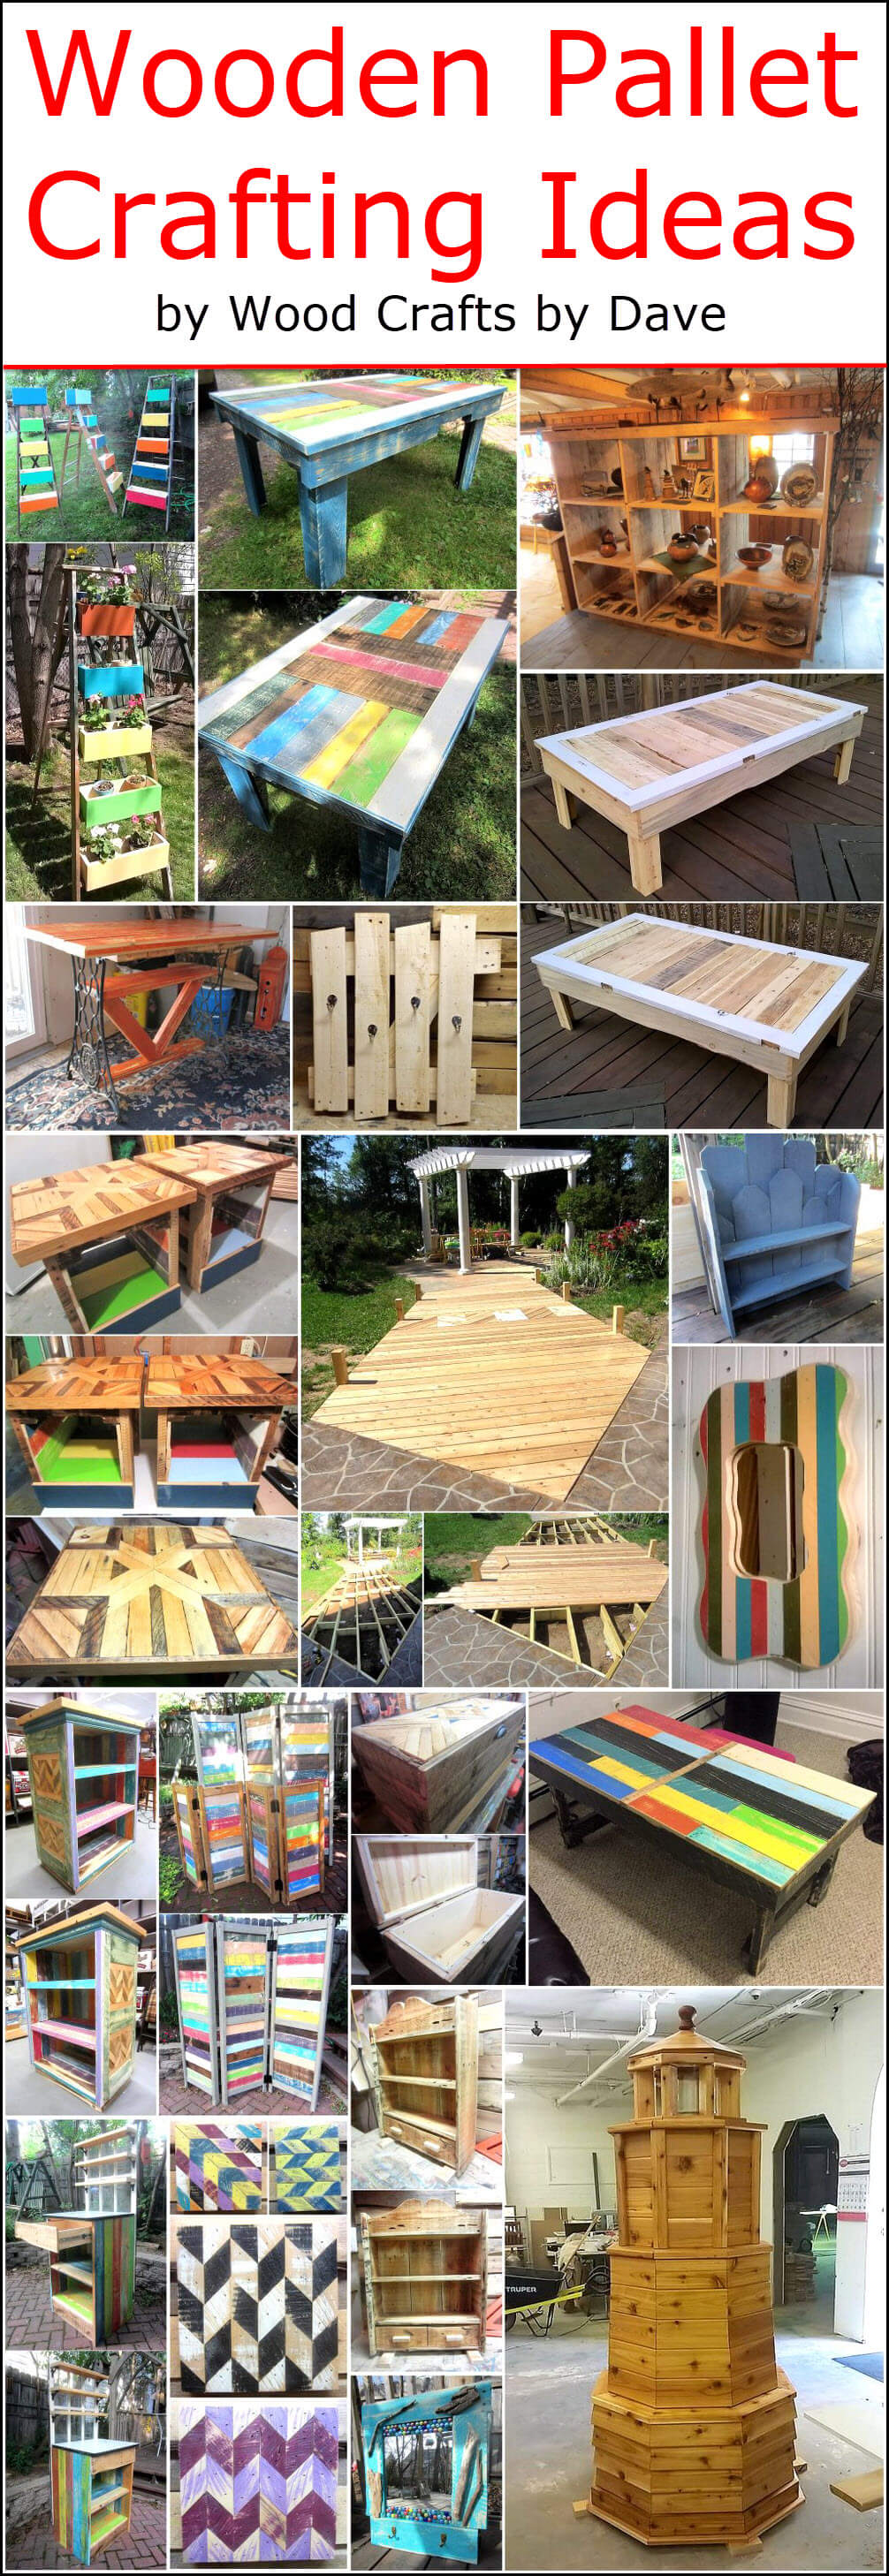 Wood Pallet Crafting Ideas